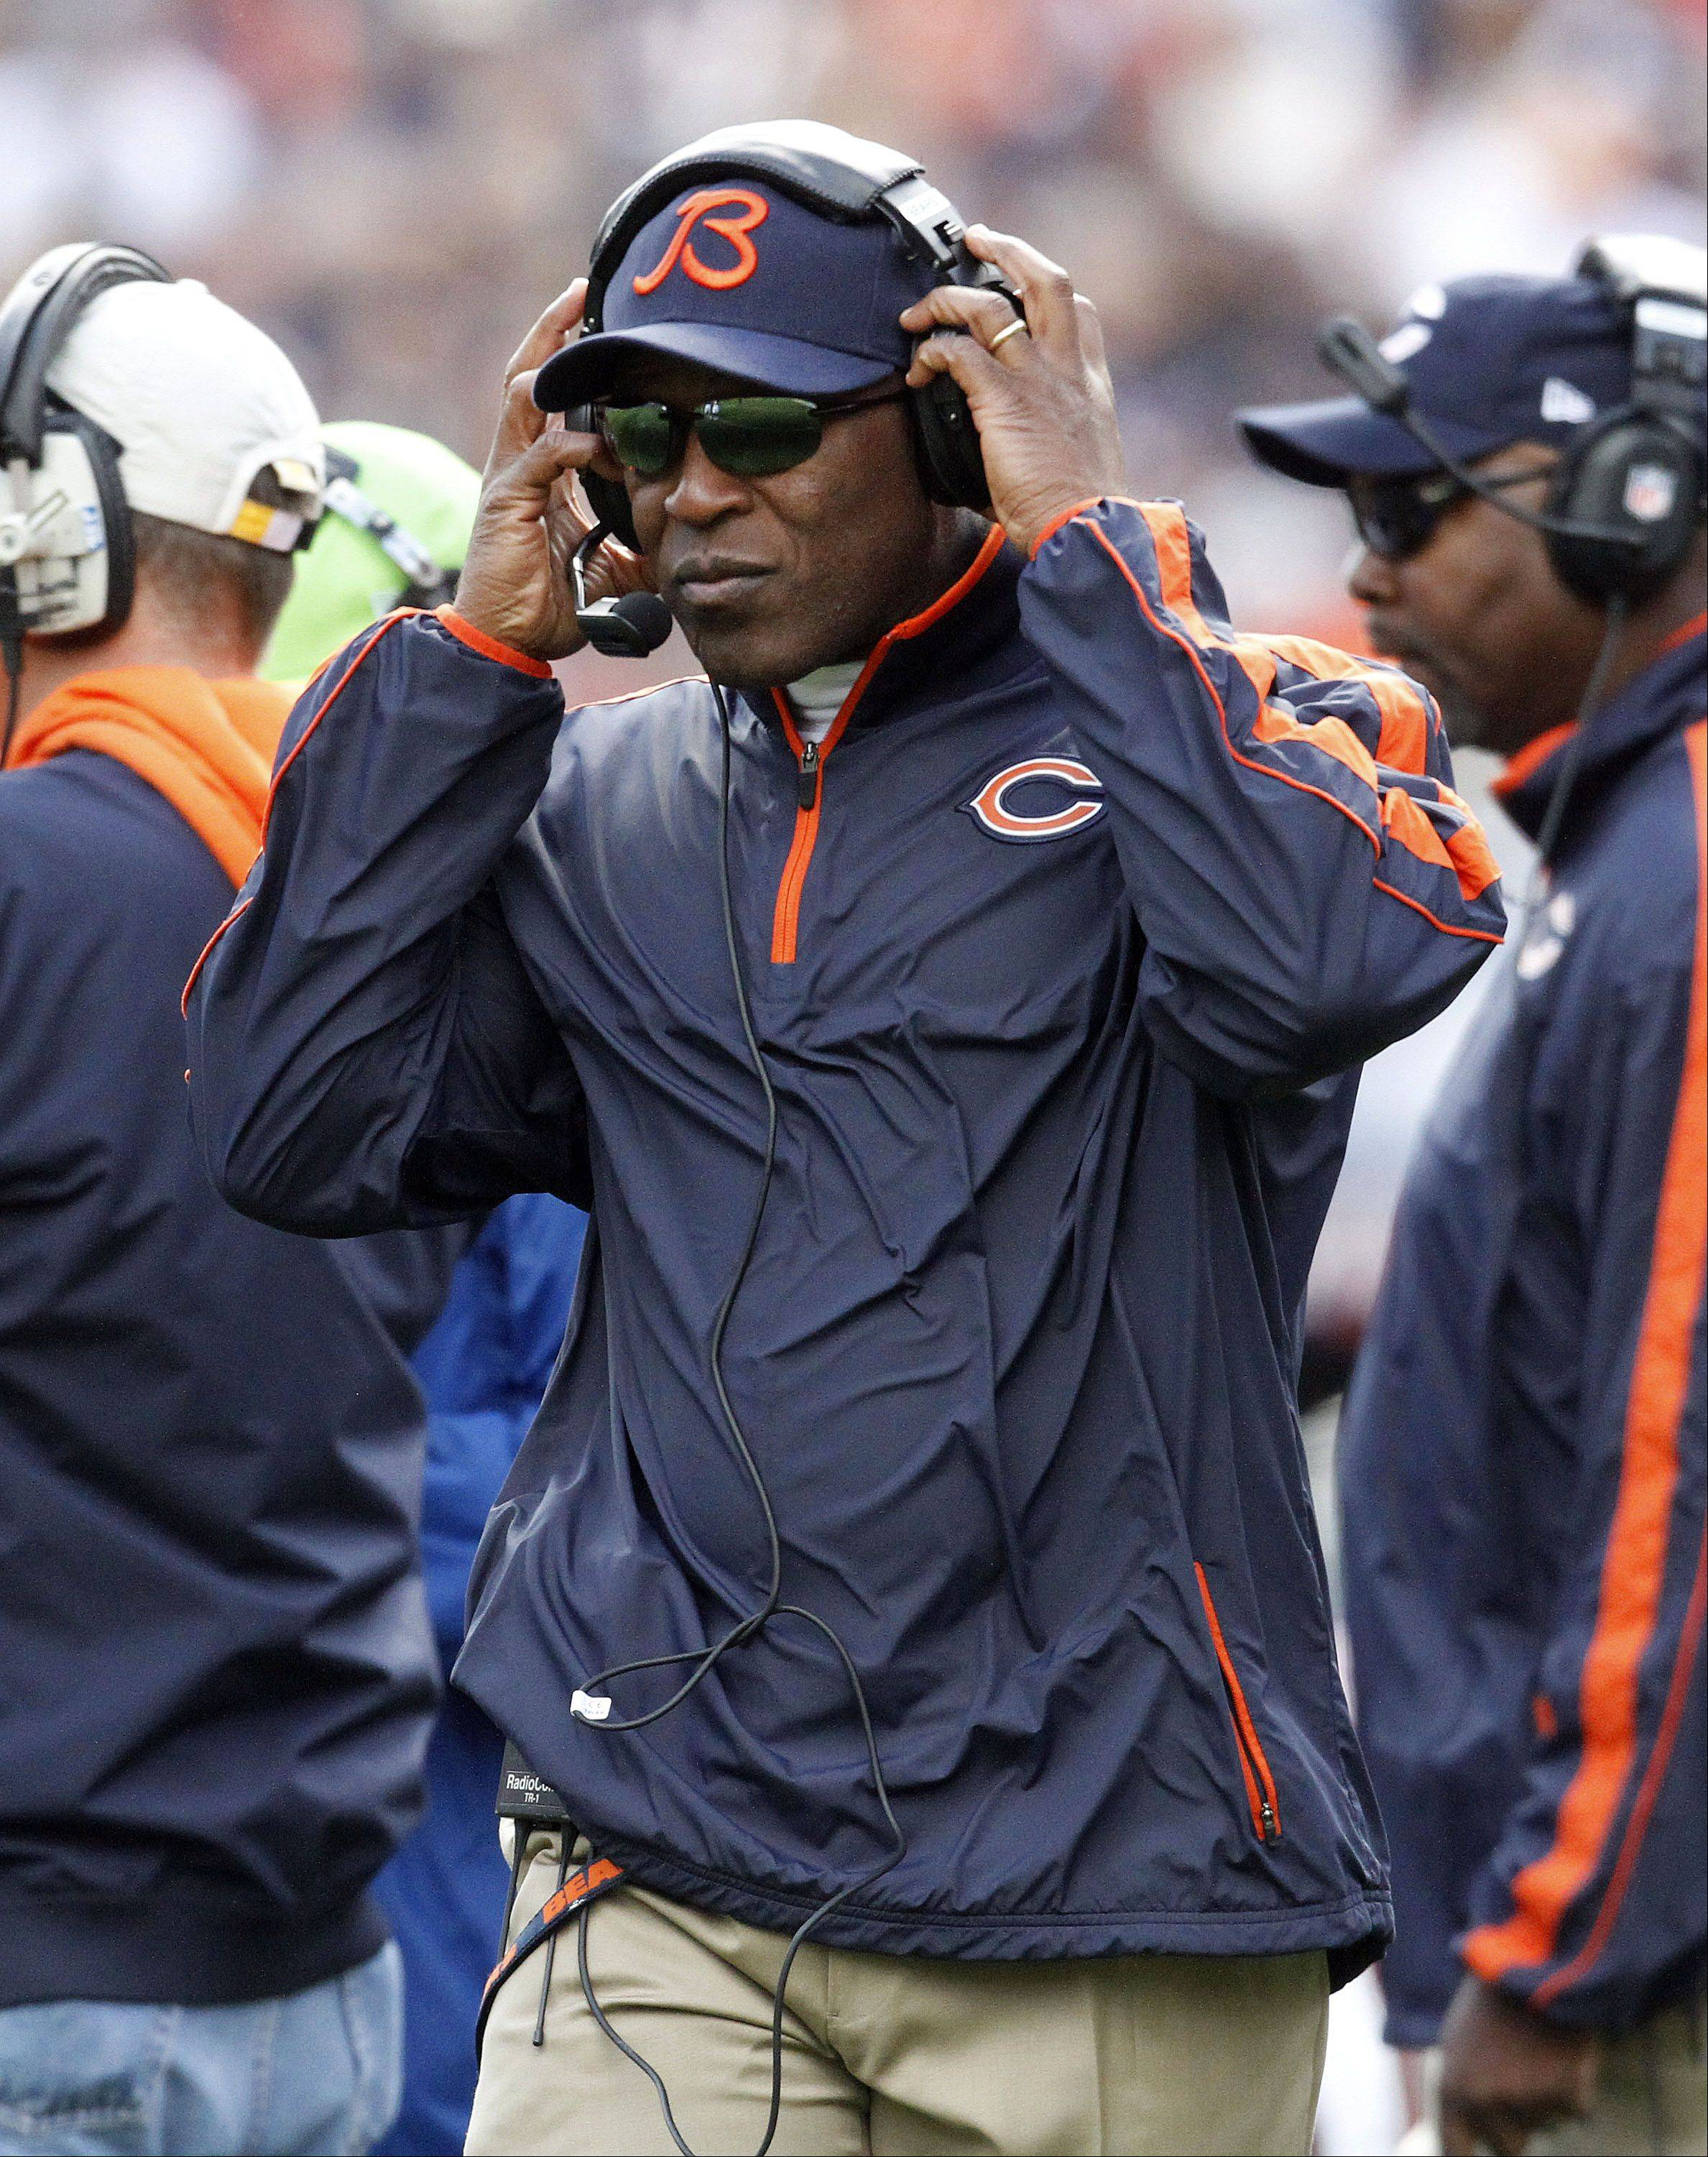 Bears coach Lovie Smith works the sidelines during the Bears 23-6 win over the St. Louis Rams Sunday at Soldier Field in Chicago.